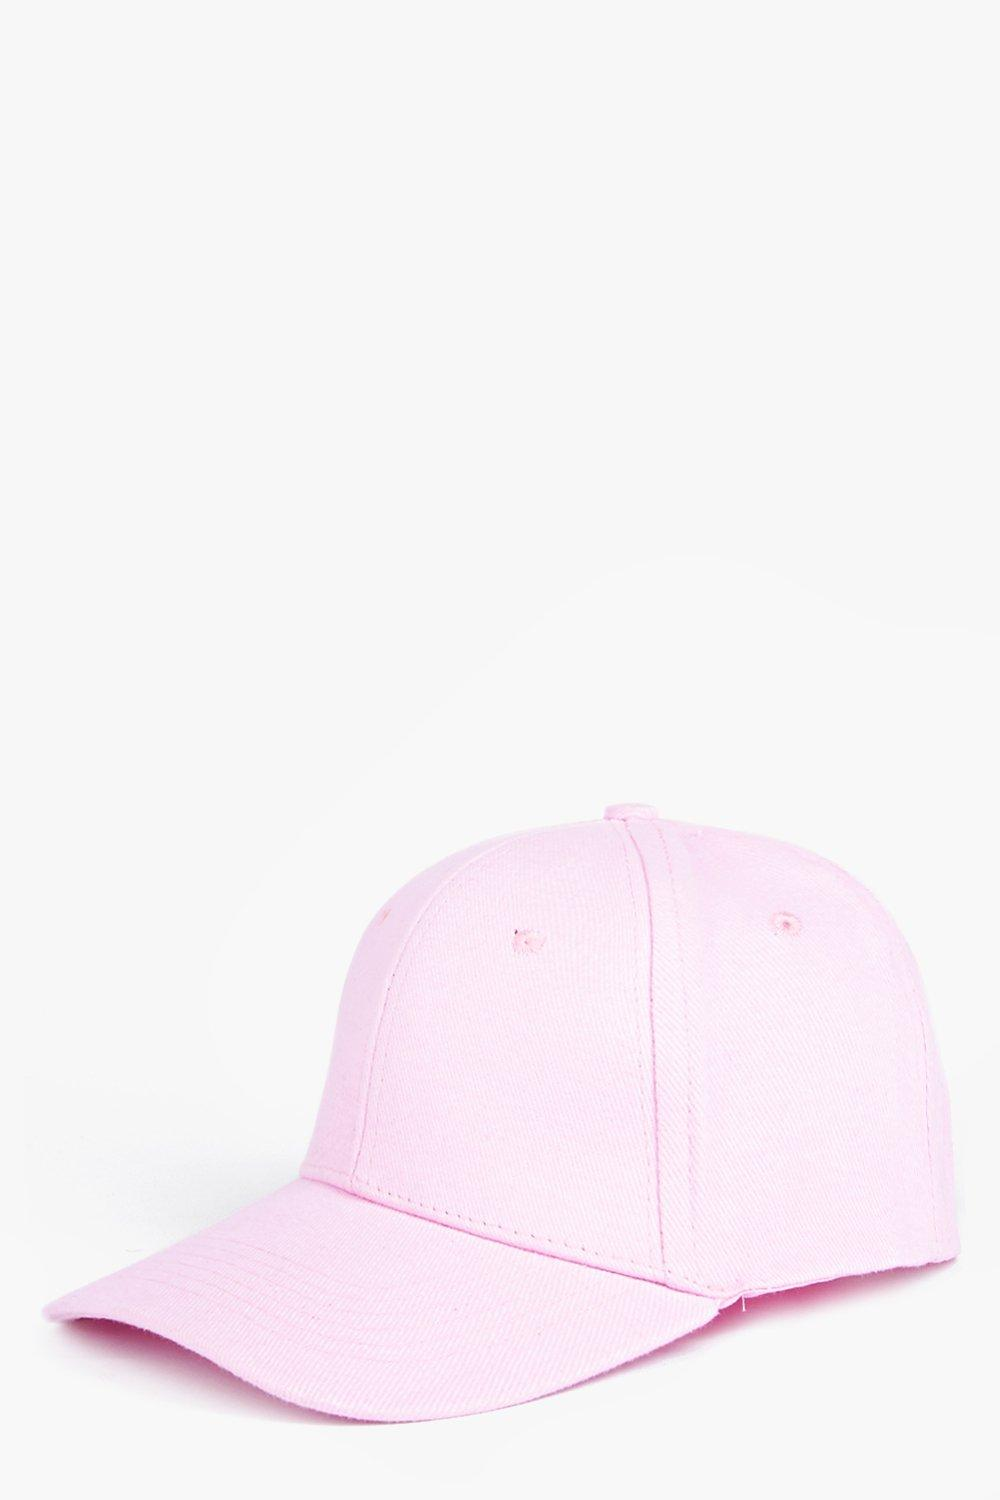 Basic Baseball Cap - pink - Stay snug in scarves a